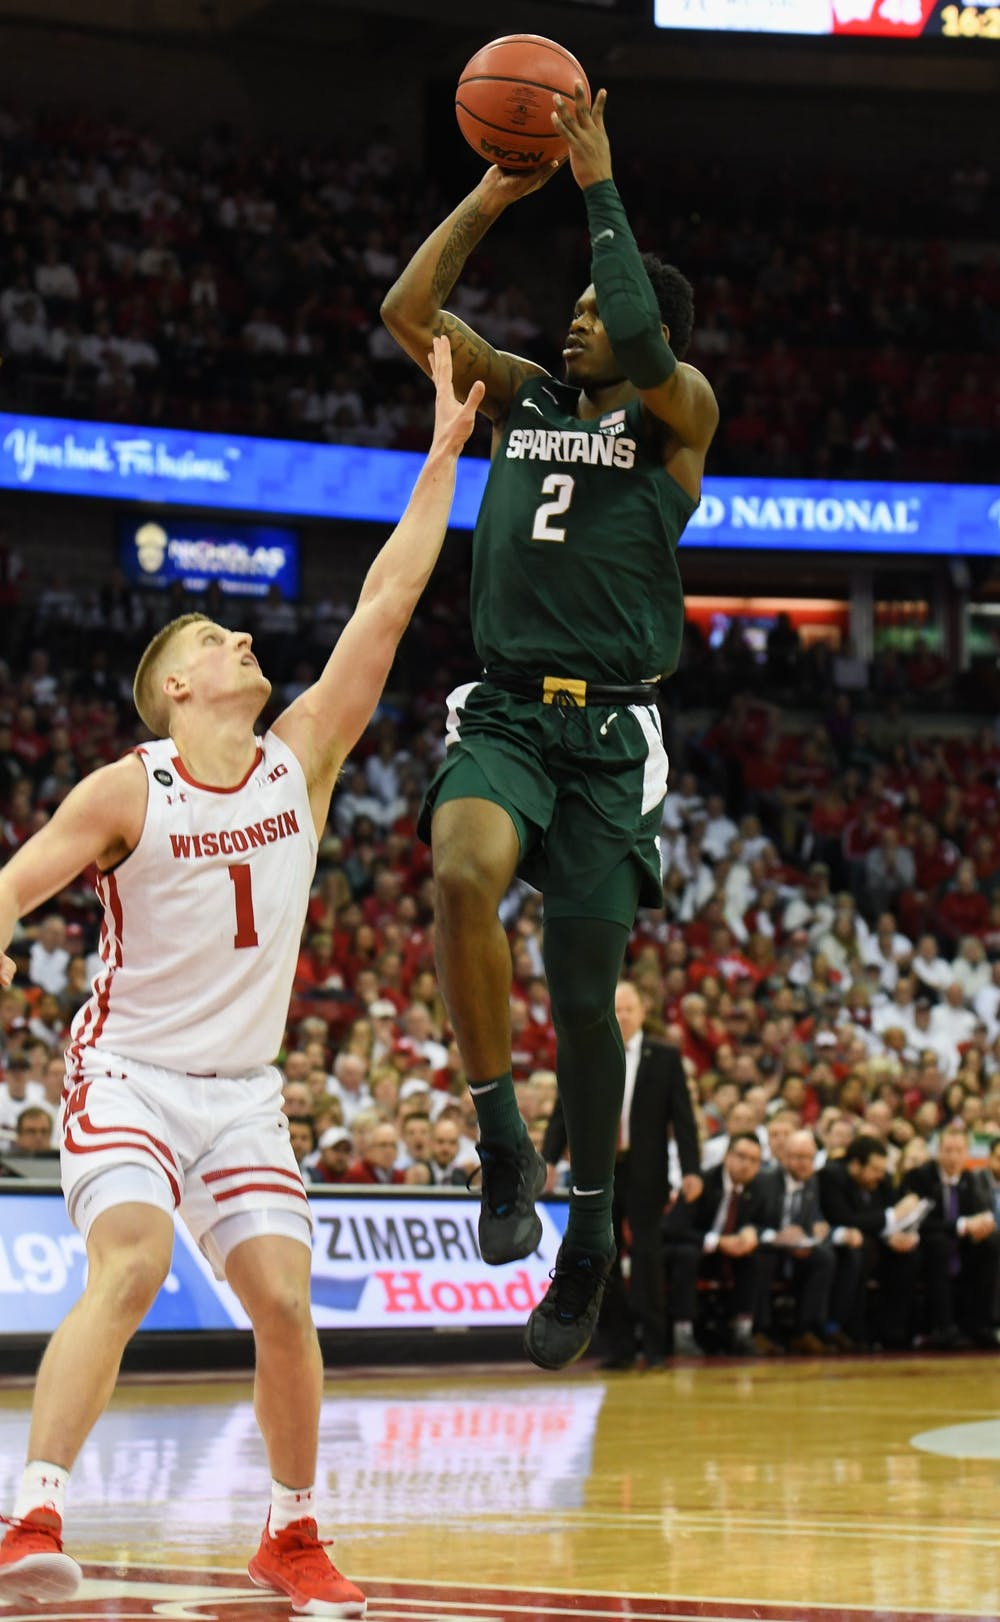 <p>Freshman guard Rocket Watts (2) shoots over a defender during the basketball game against Wisconsin on Feb. 1, 2020 at the Kohl Center in Madison, Wisconsin. The Spartans fell to the Badgers, 63-64.</p>